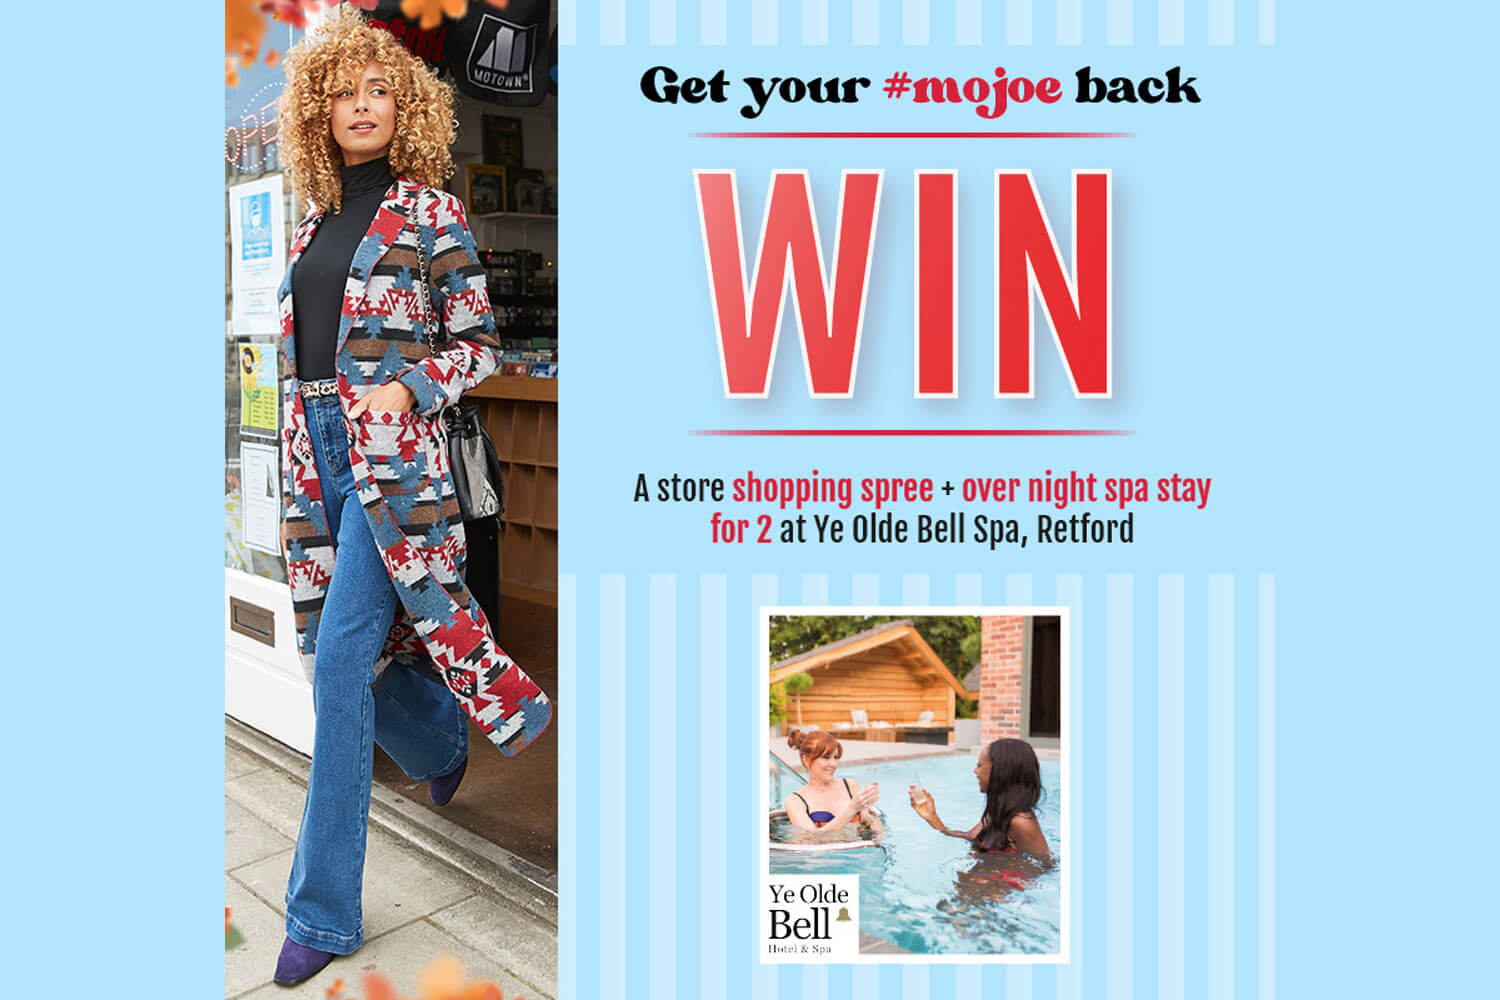 Get your #mojoe back: Win a spa day and shopping spree for 2!